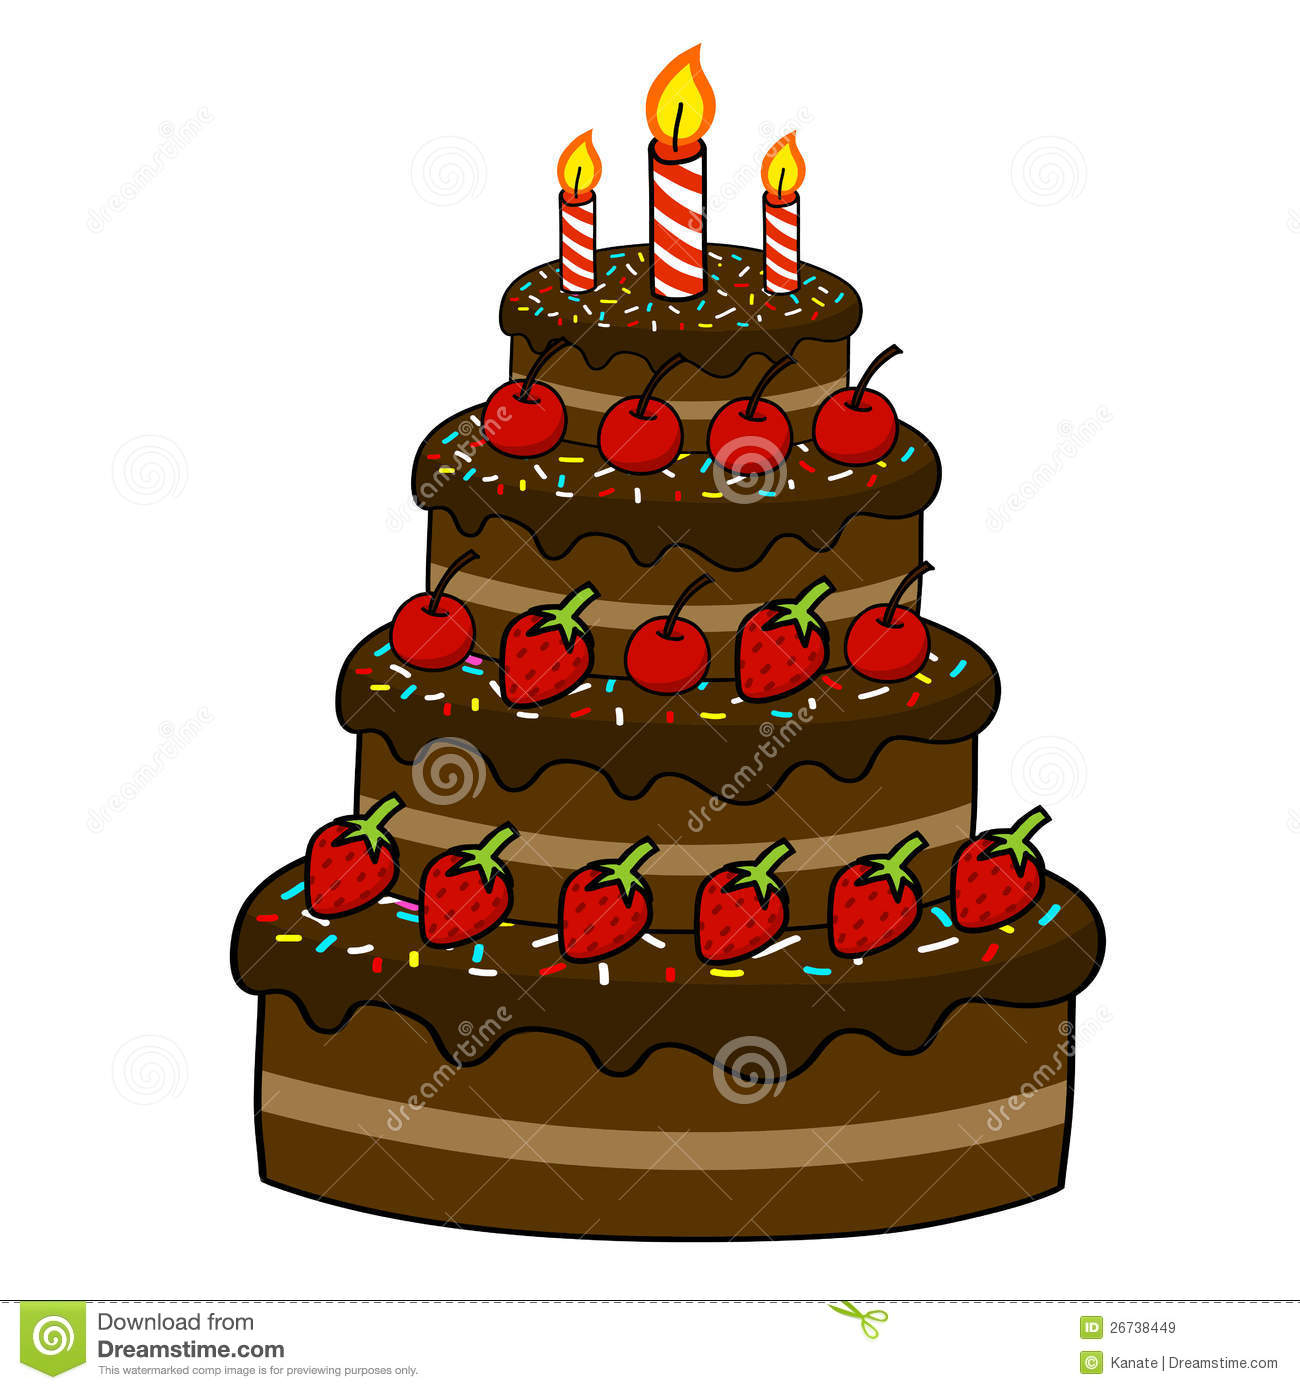 Cartoon cake hand drawing stock vector. Image of element ...